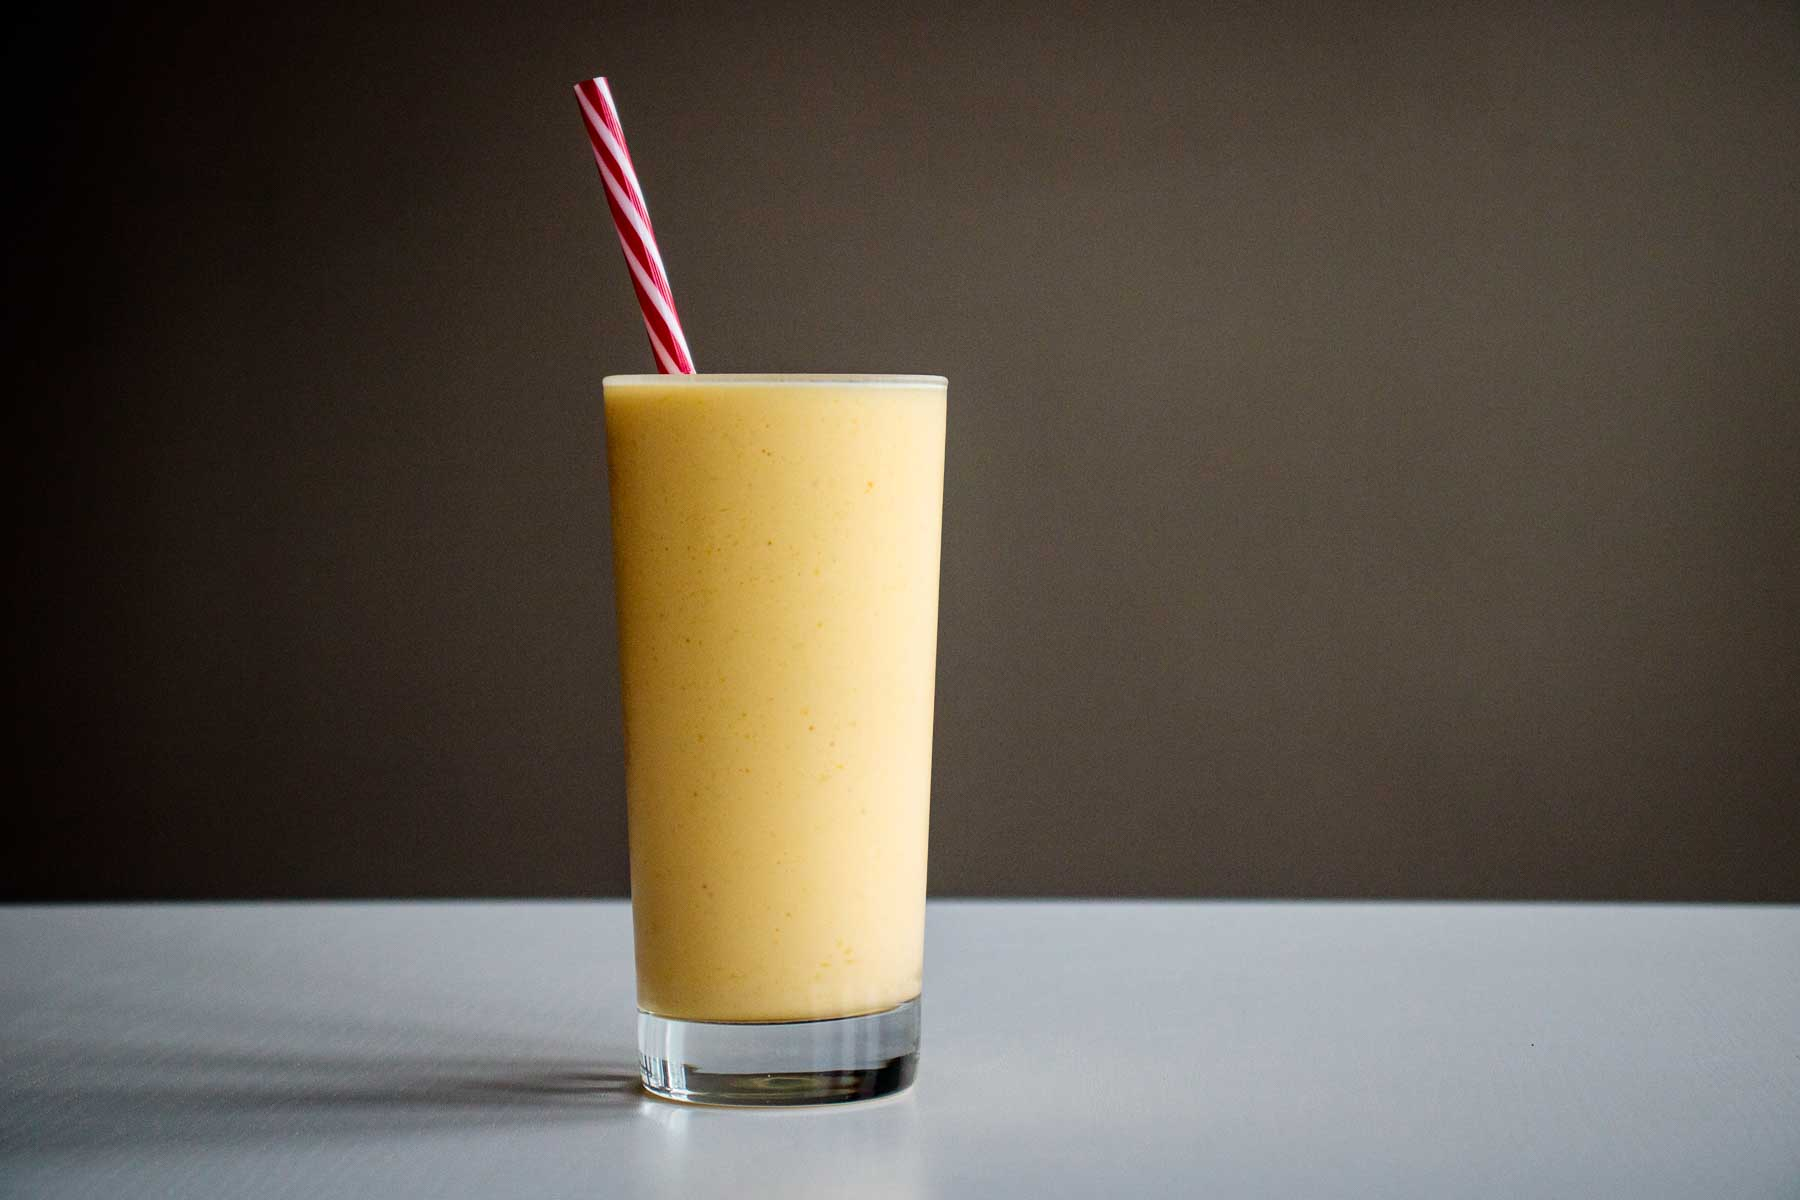 mango smoothie served in a tall glass cup with reusable red straw